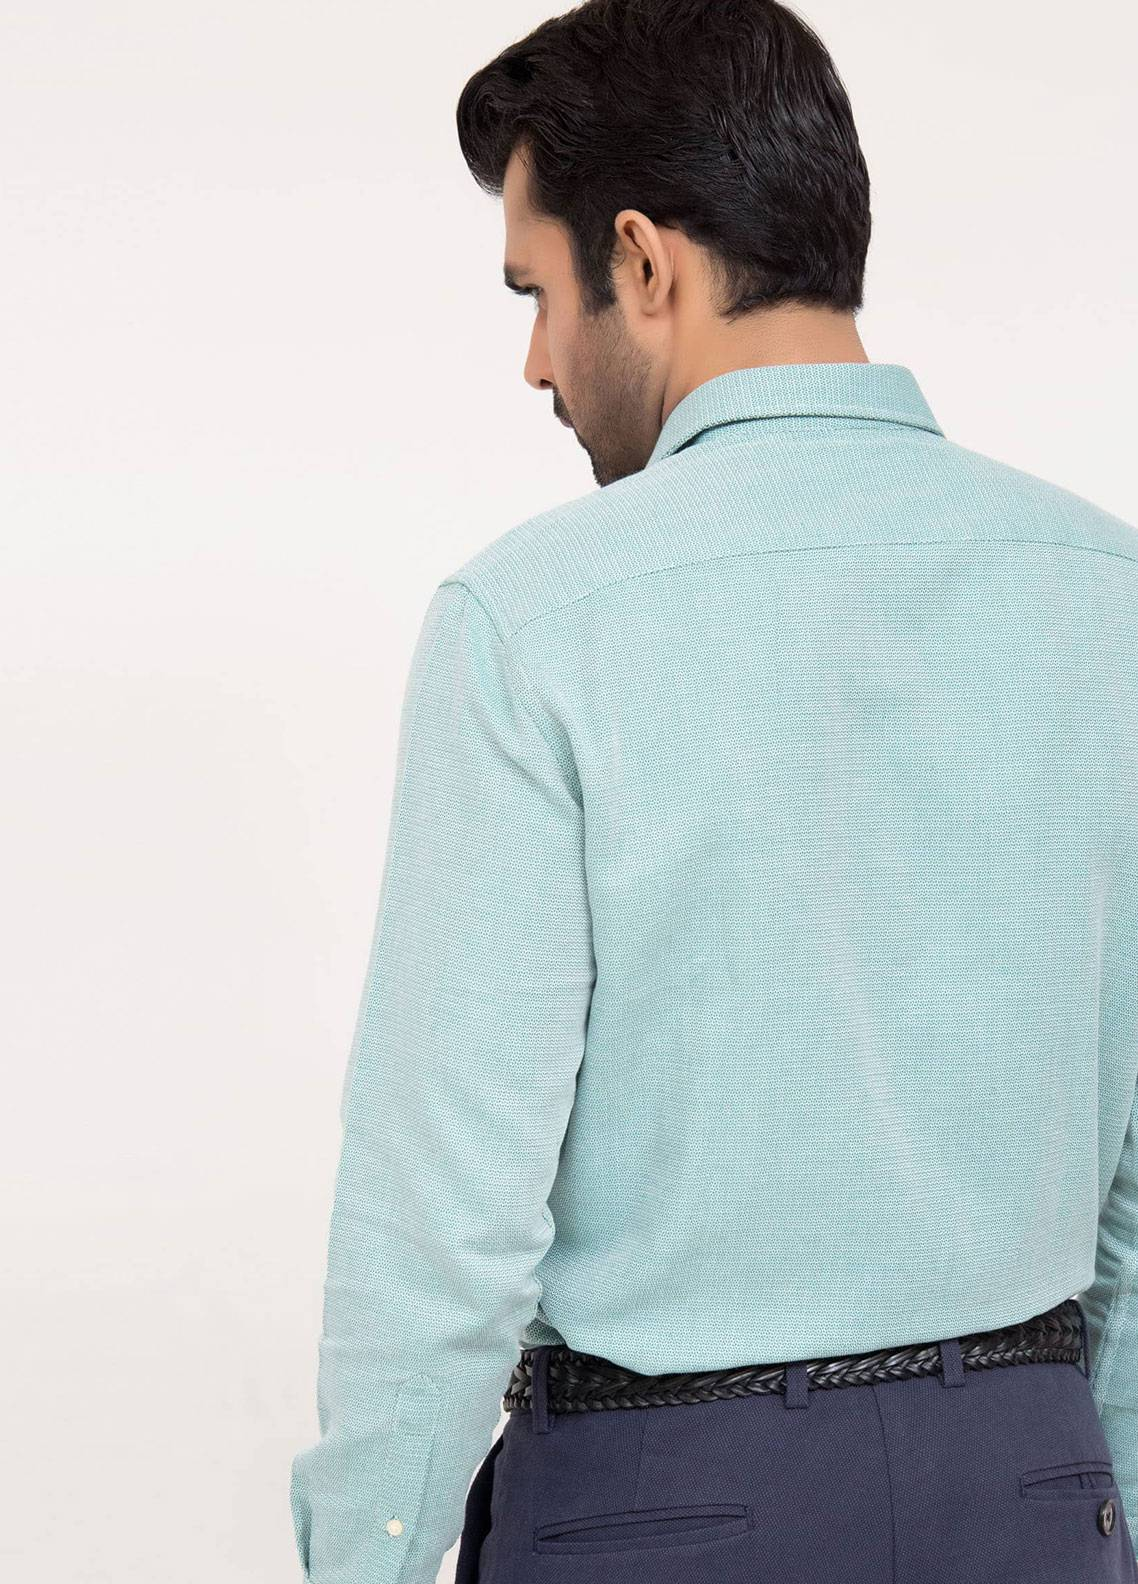 Brumano Cotton Formal Shirts for Men Green BRM 304